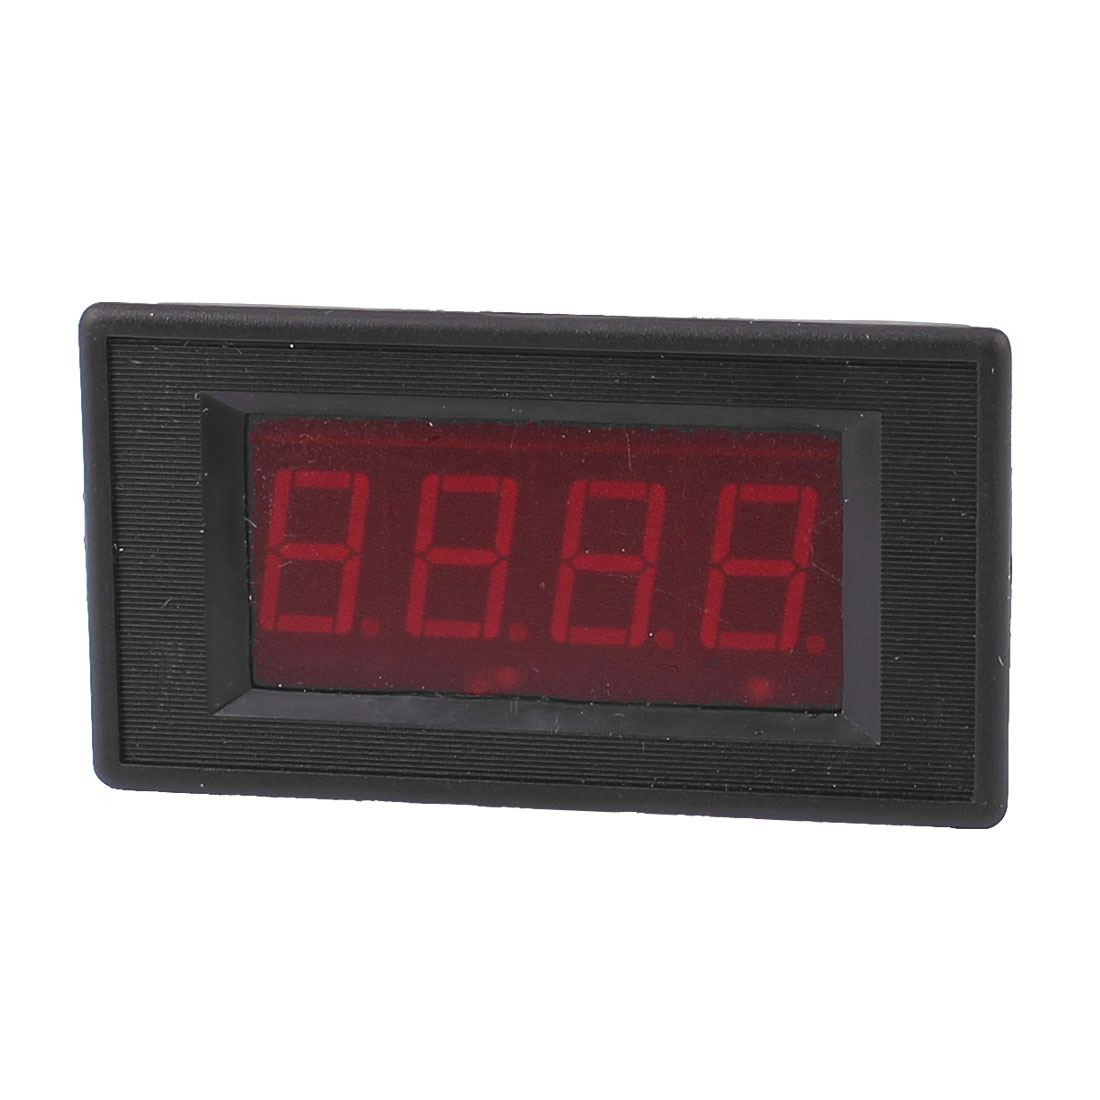 AC 20V Input Volt 4 Digit Digital Display Voltmeter Voltage Panel Meter